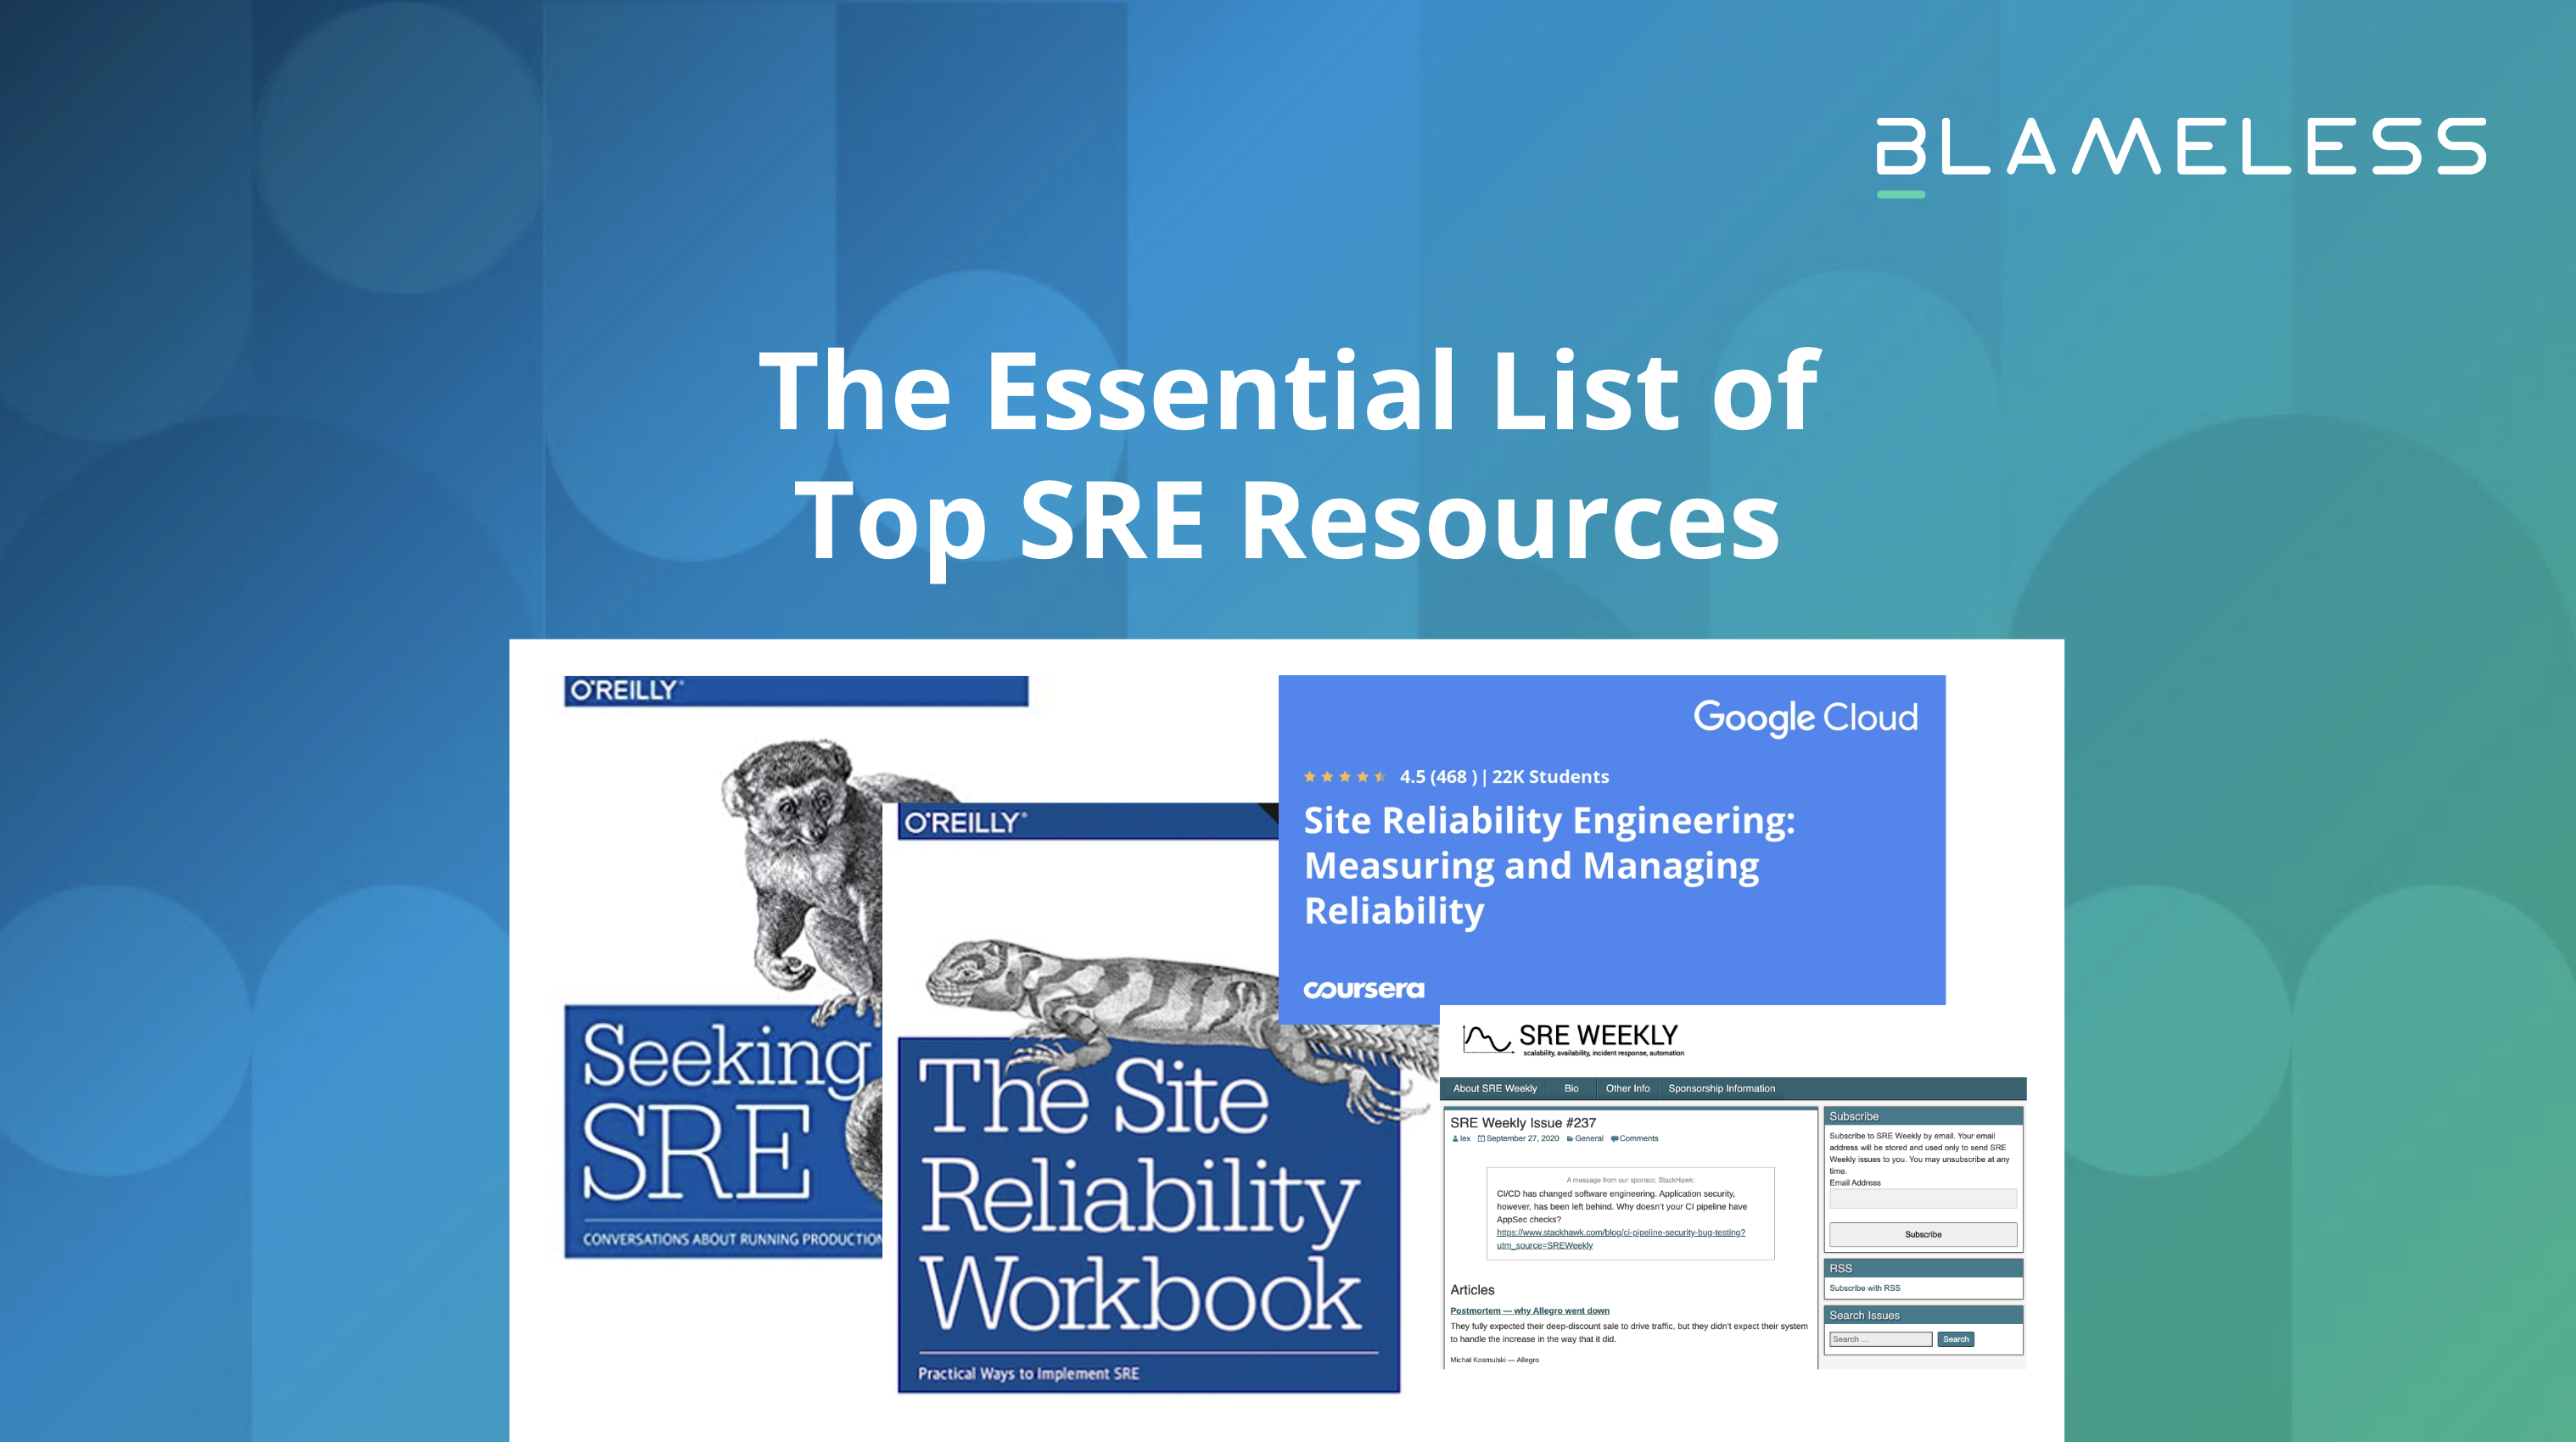 The Essential List of Top SRE Resources